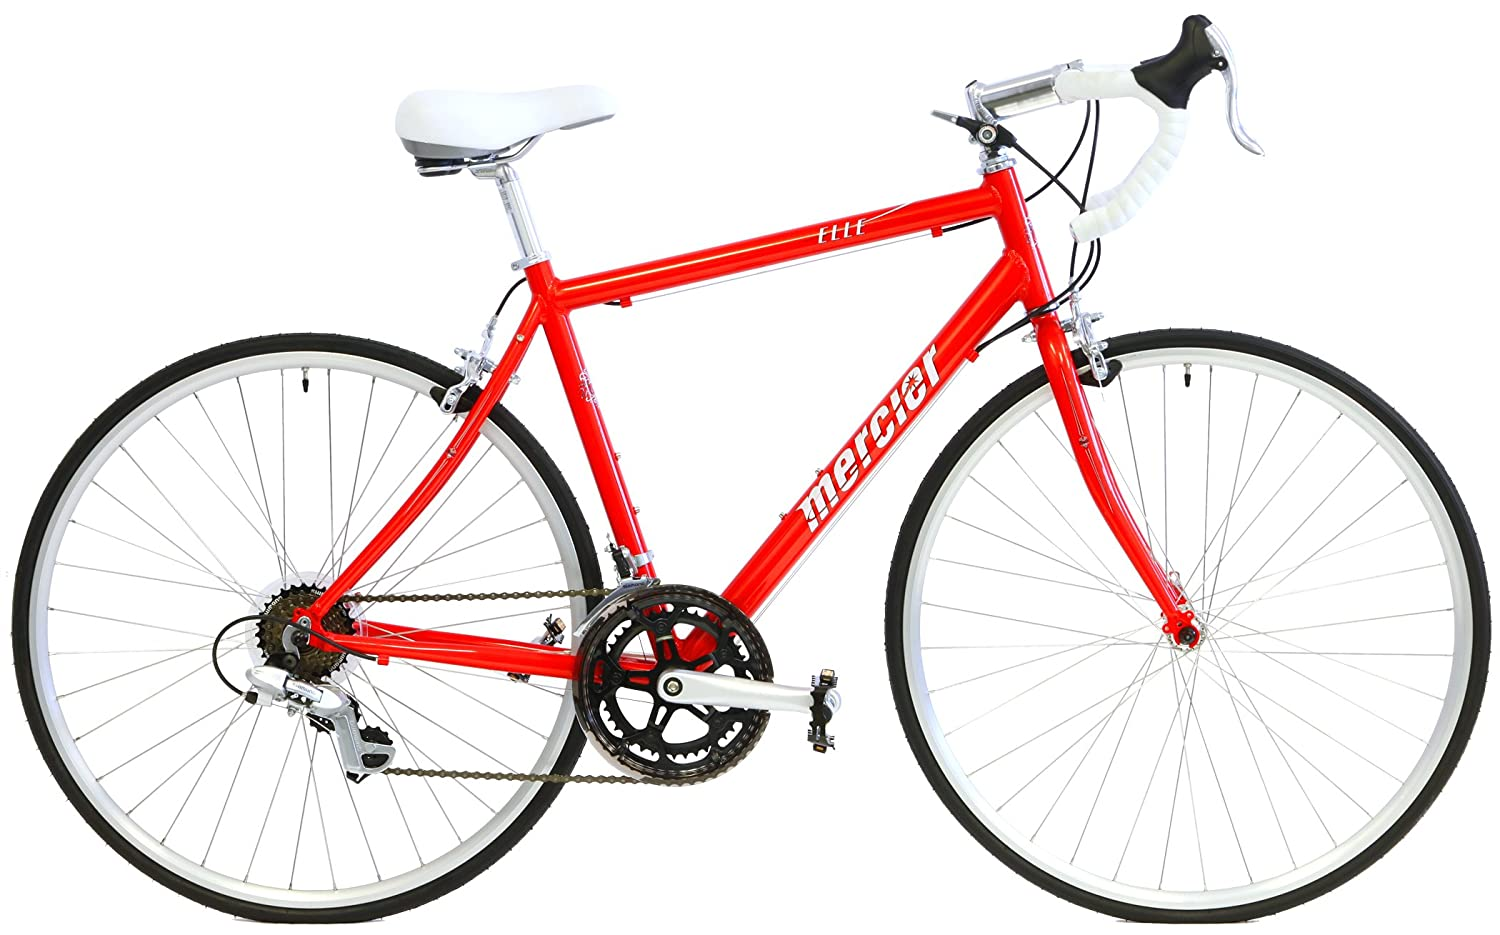 Amazon.com : Mercier Elle Sport Womens Specific Road Bike Shimano 14 Speed : Sports & Outdoors